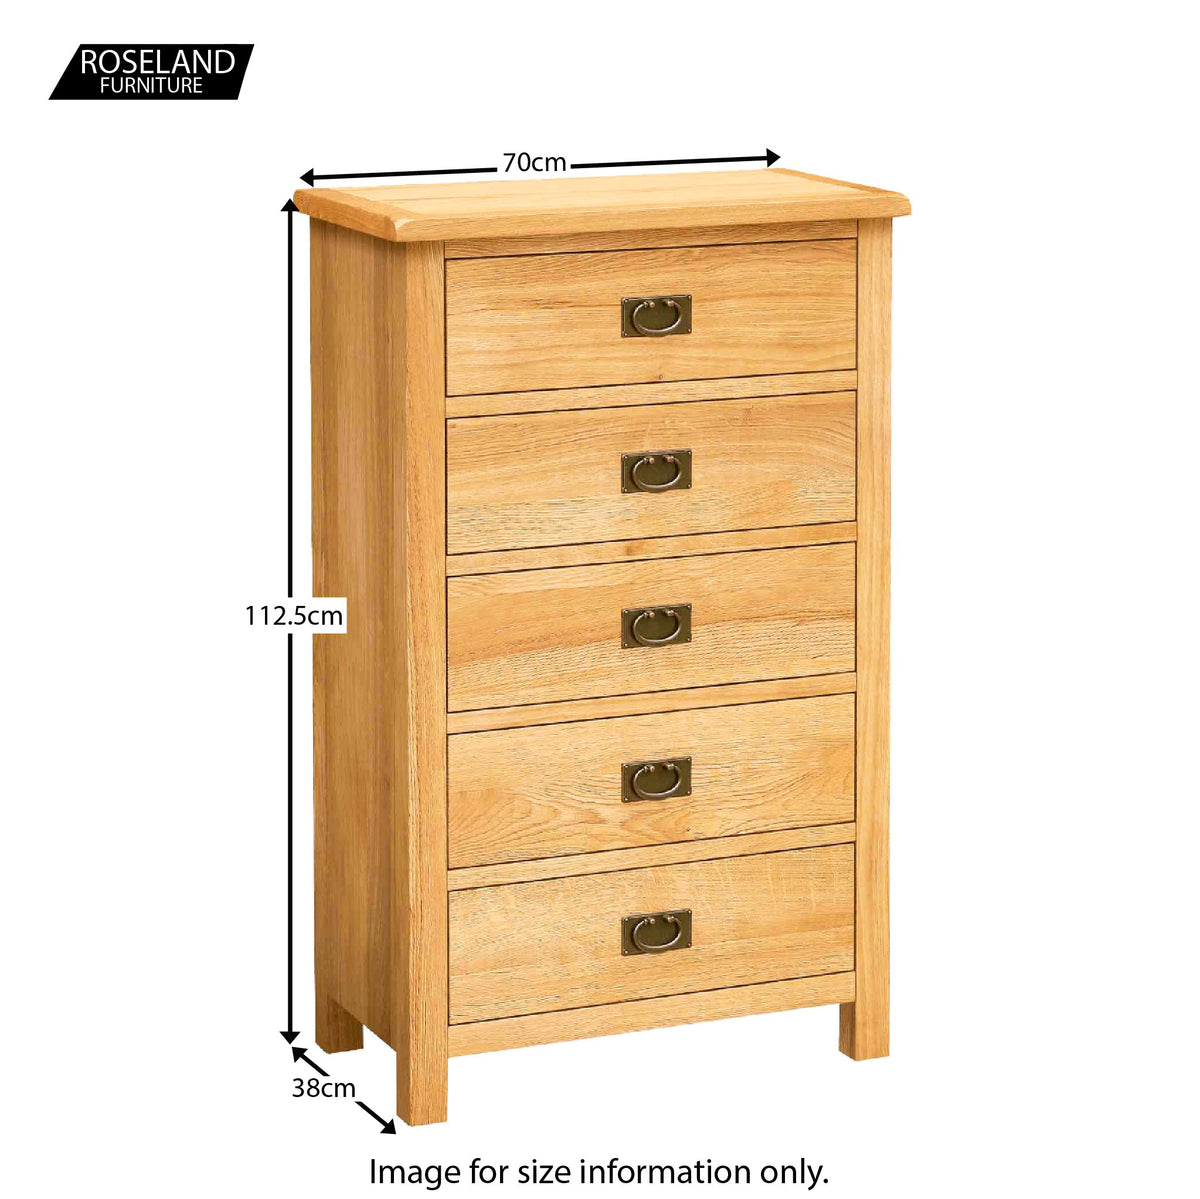 Surrey Oak waxed 5 drawer wide chest - Size Guide